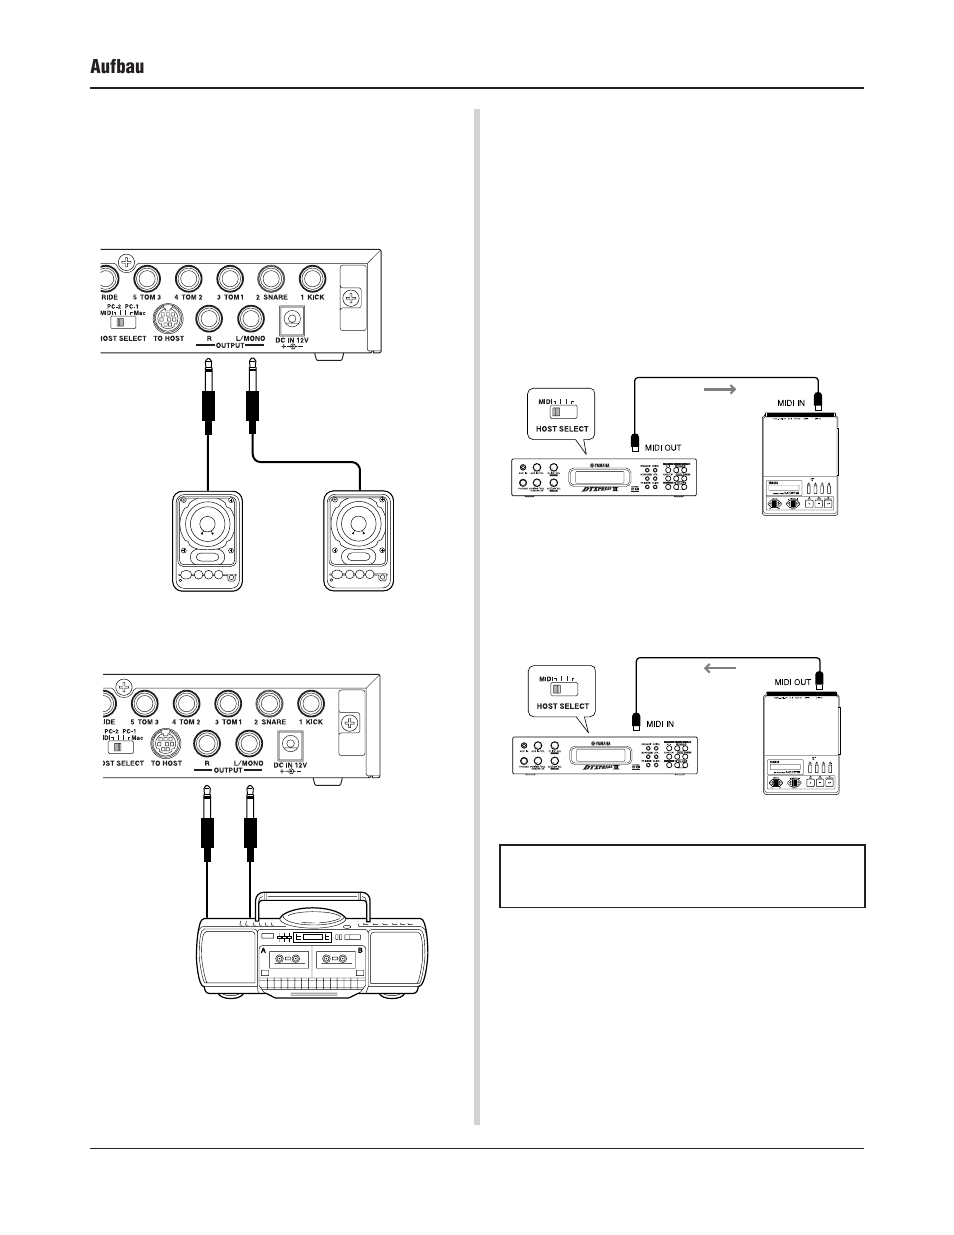 aufbau yamaha dtxpress iii user manual page 78 196 original mode rh manualsdir com yamaha dtx 400 user manual yamaha dtxpress iv instruction manual